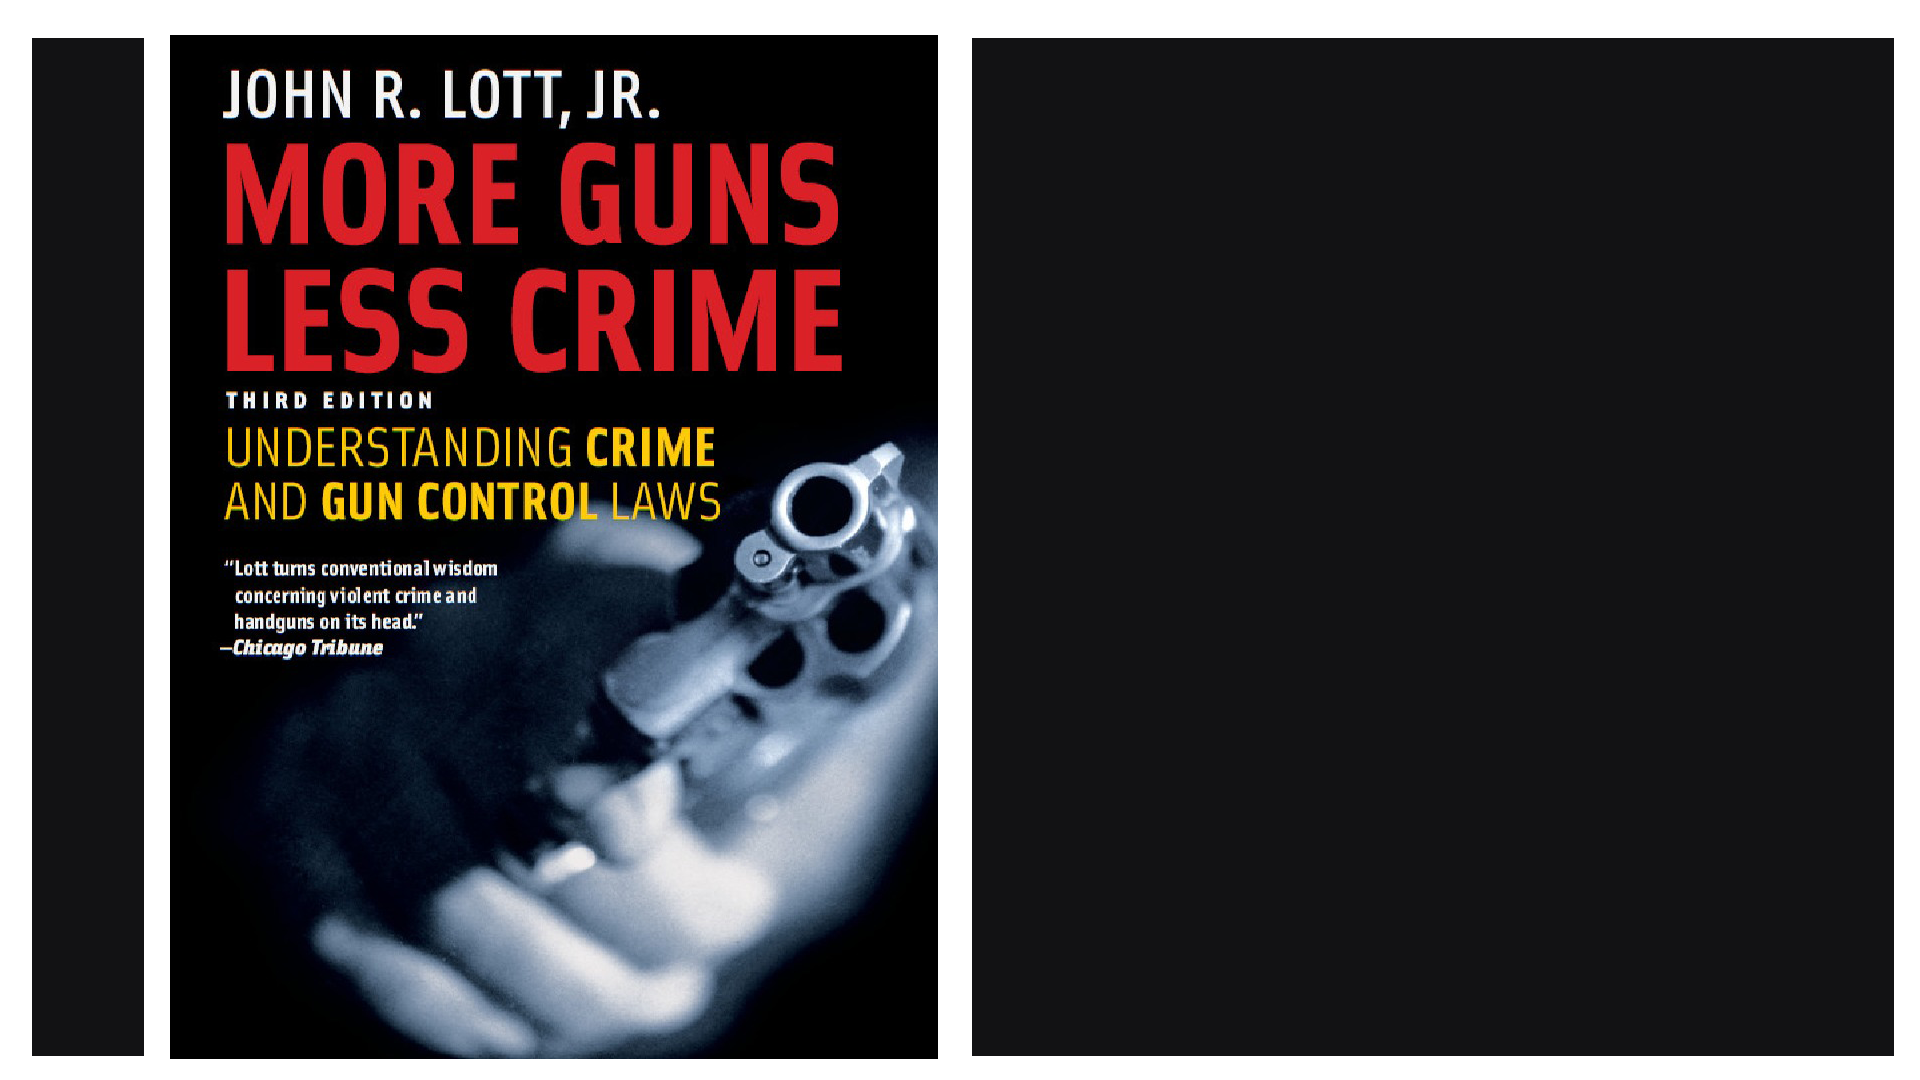 Fraudulent study in the American Journal of Public Health inaccurately claims that states with more guns have more police deaths by John R. Lott, Crime Prevention Research Centre The end of last week a study in the American Journal of Public Health claimed that there were more police feloniously killed in states that had more […]